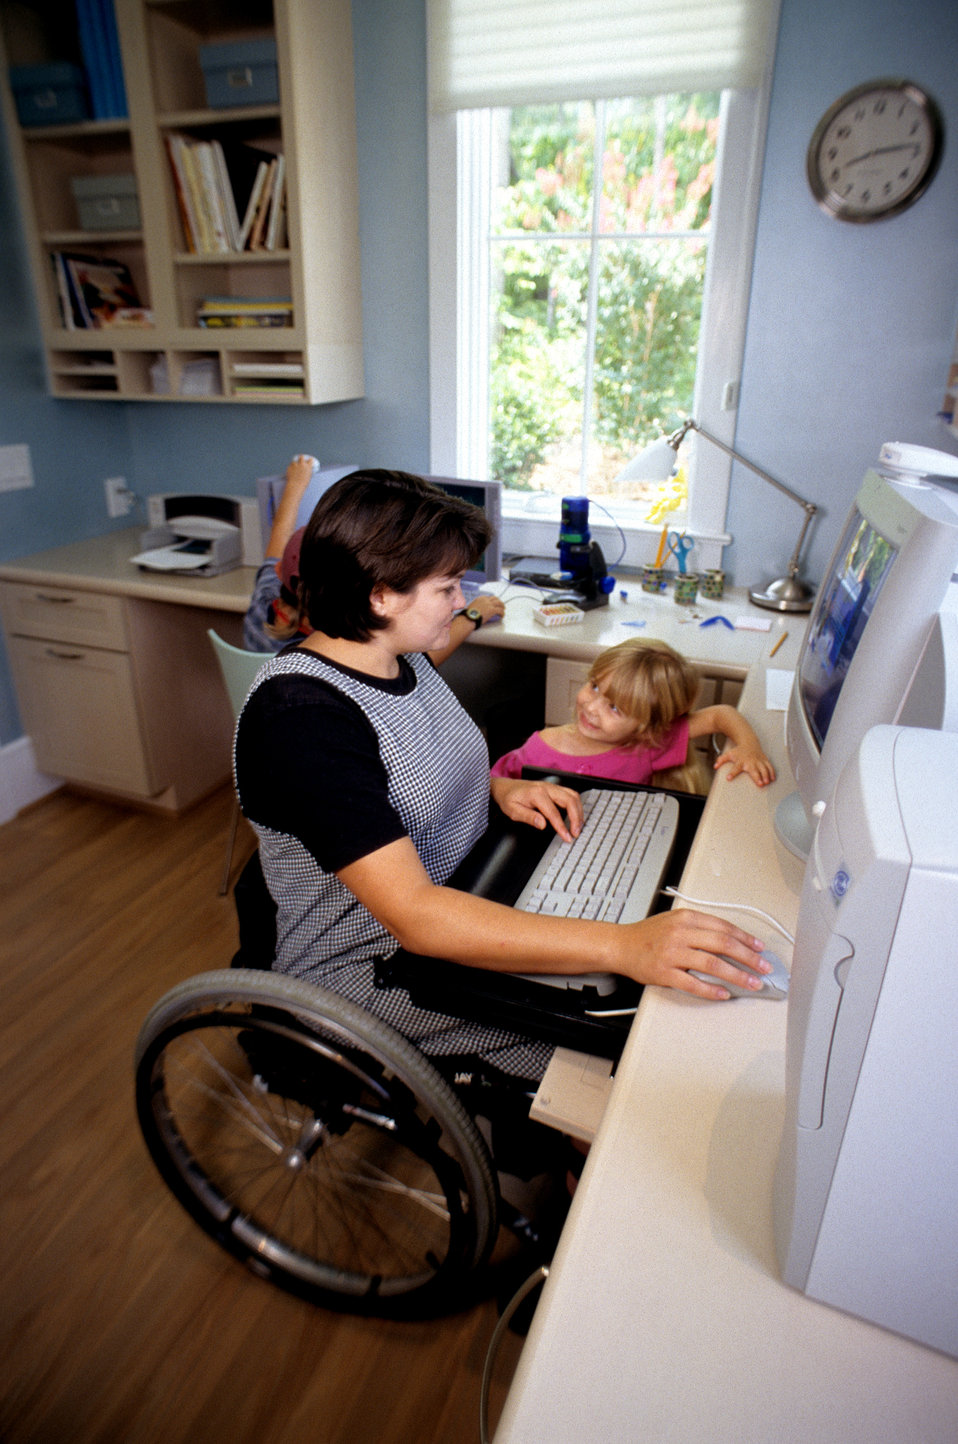 This 2000 image depicted a wheelchair-seated woman seated at her home computer workstation, while two children, a young girl and boy, were p